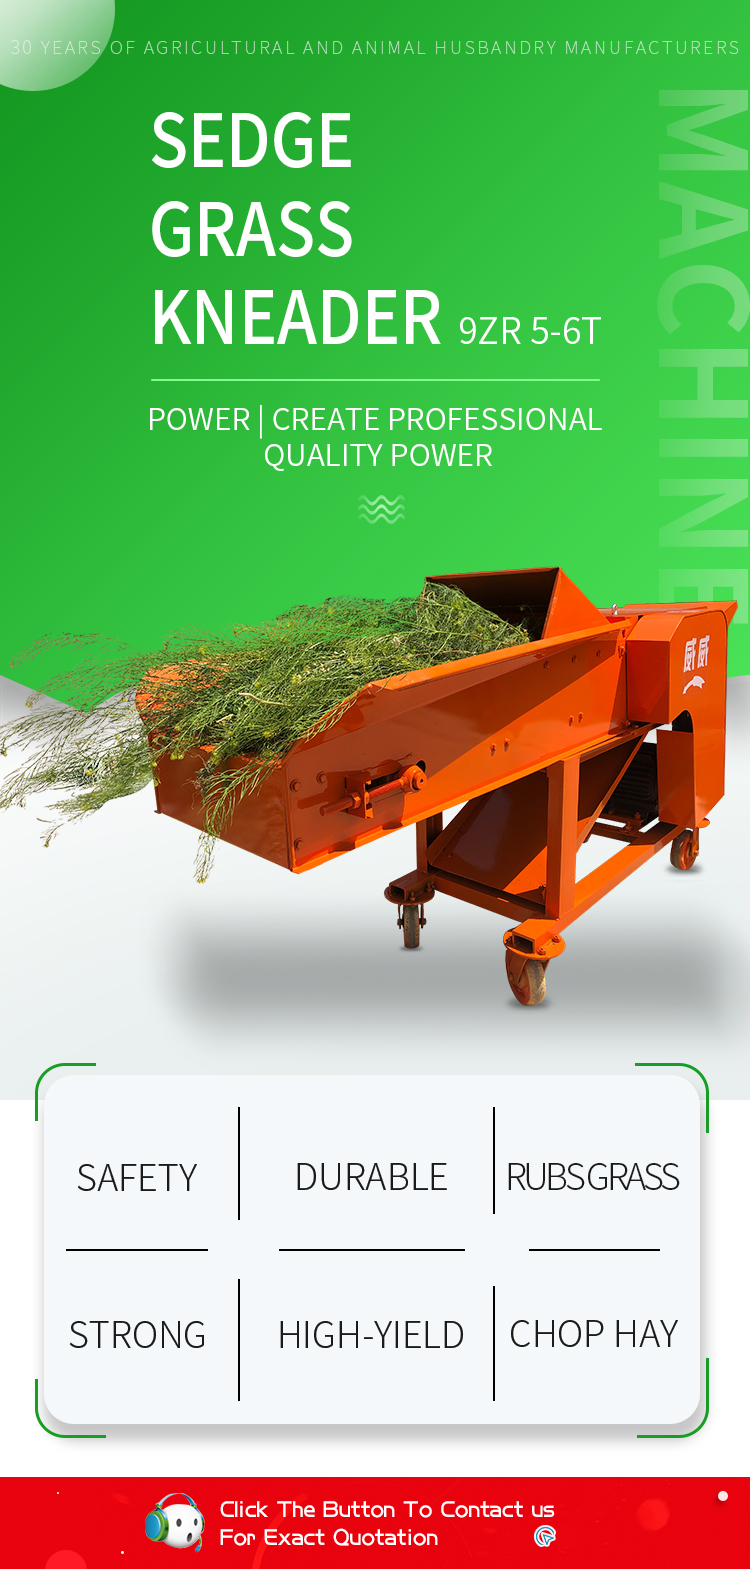 Weiwei feed processing turnkey cattle feed mill plant